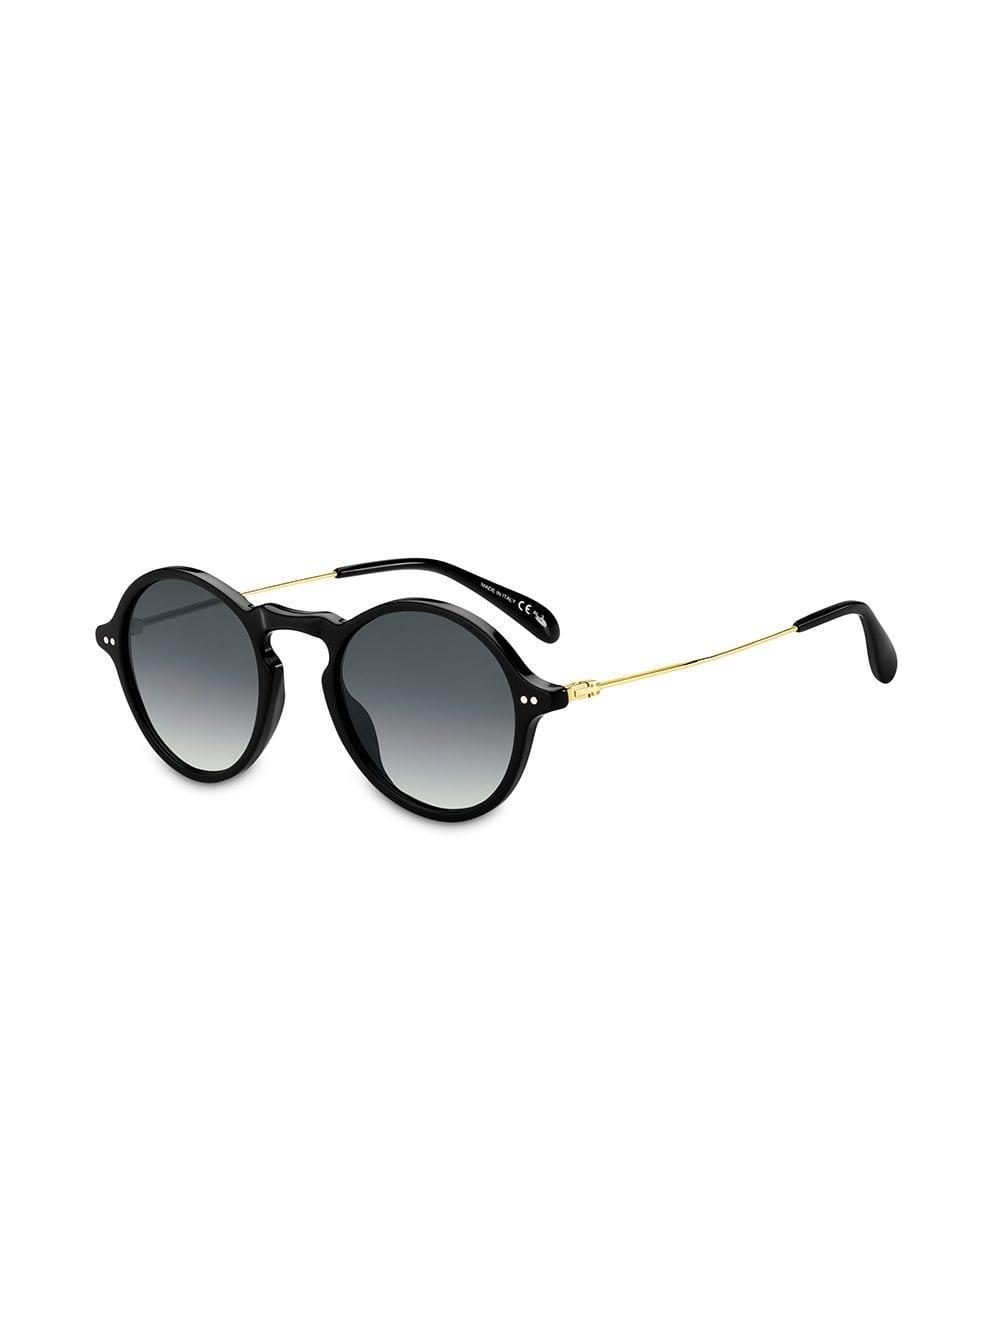 8374918cbfdbe Givenchy Round Frame Sunglasses in Black for Men - Lyst